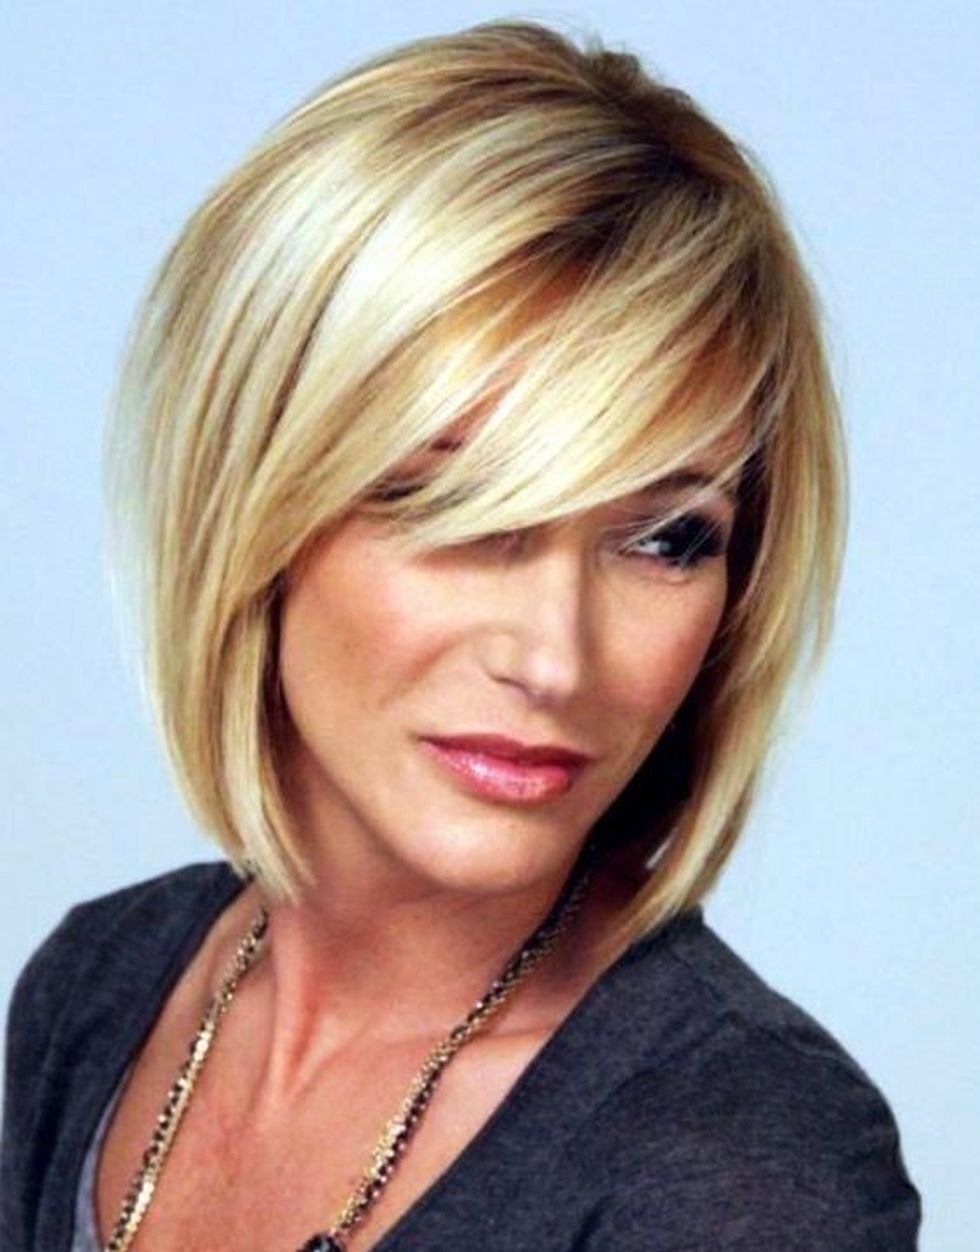 Fabulous over 50 short hairstyle ideas 8